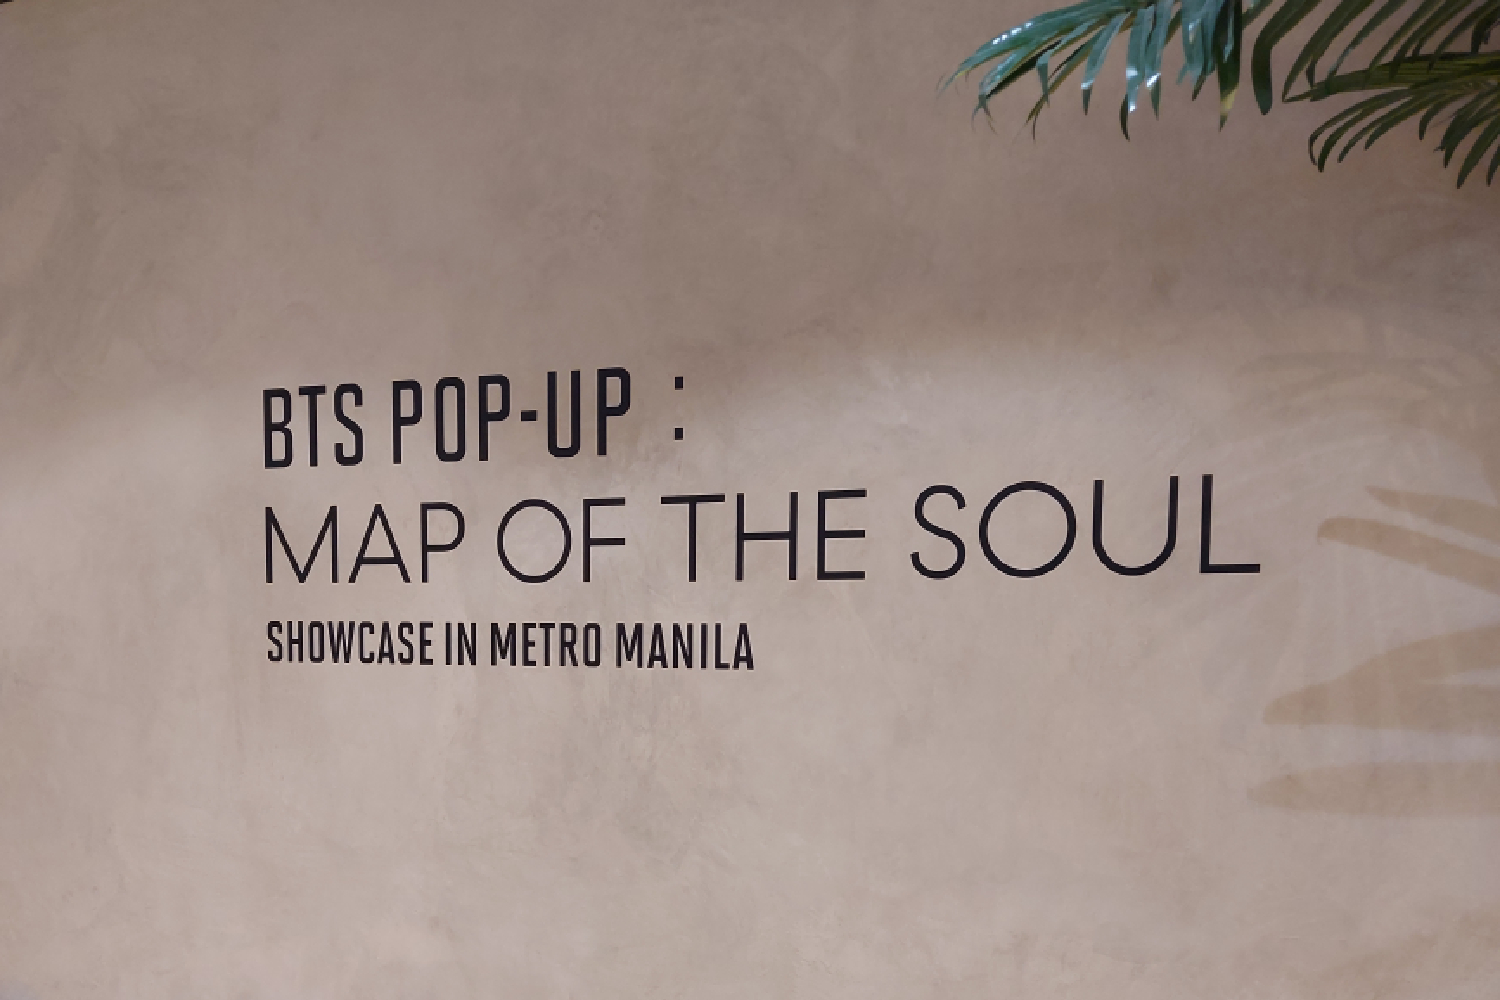 BTS Pop-up: Map of the Soul Showcase in Metro Manila extended till October 31